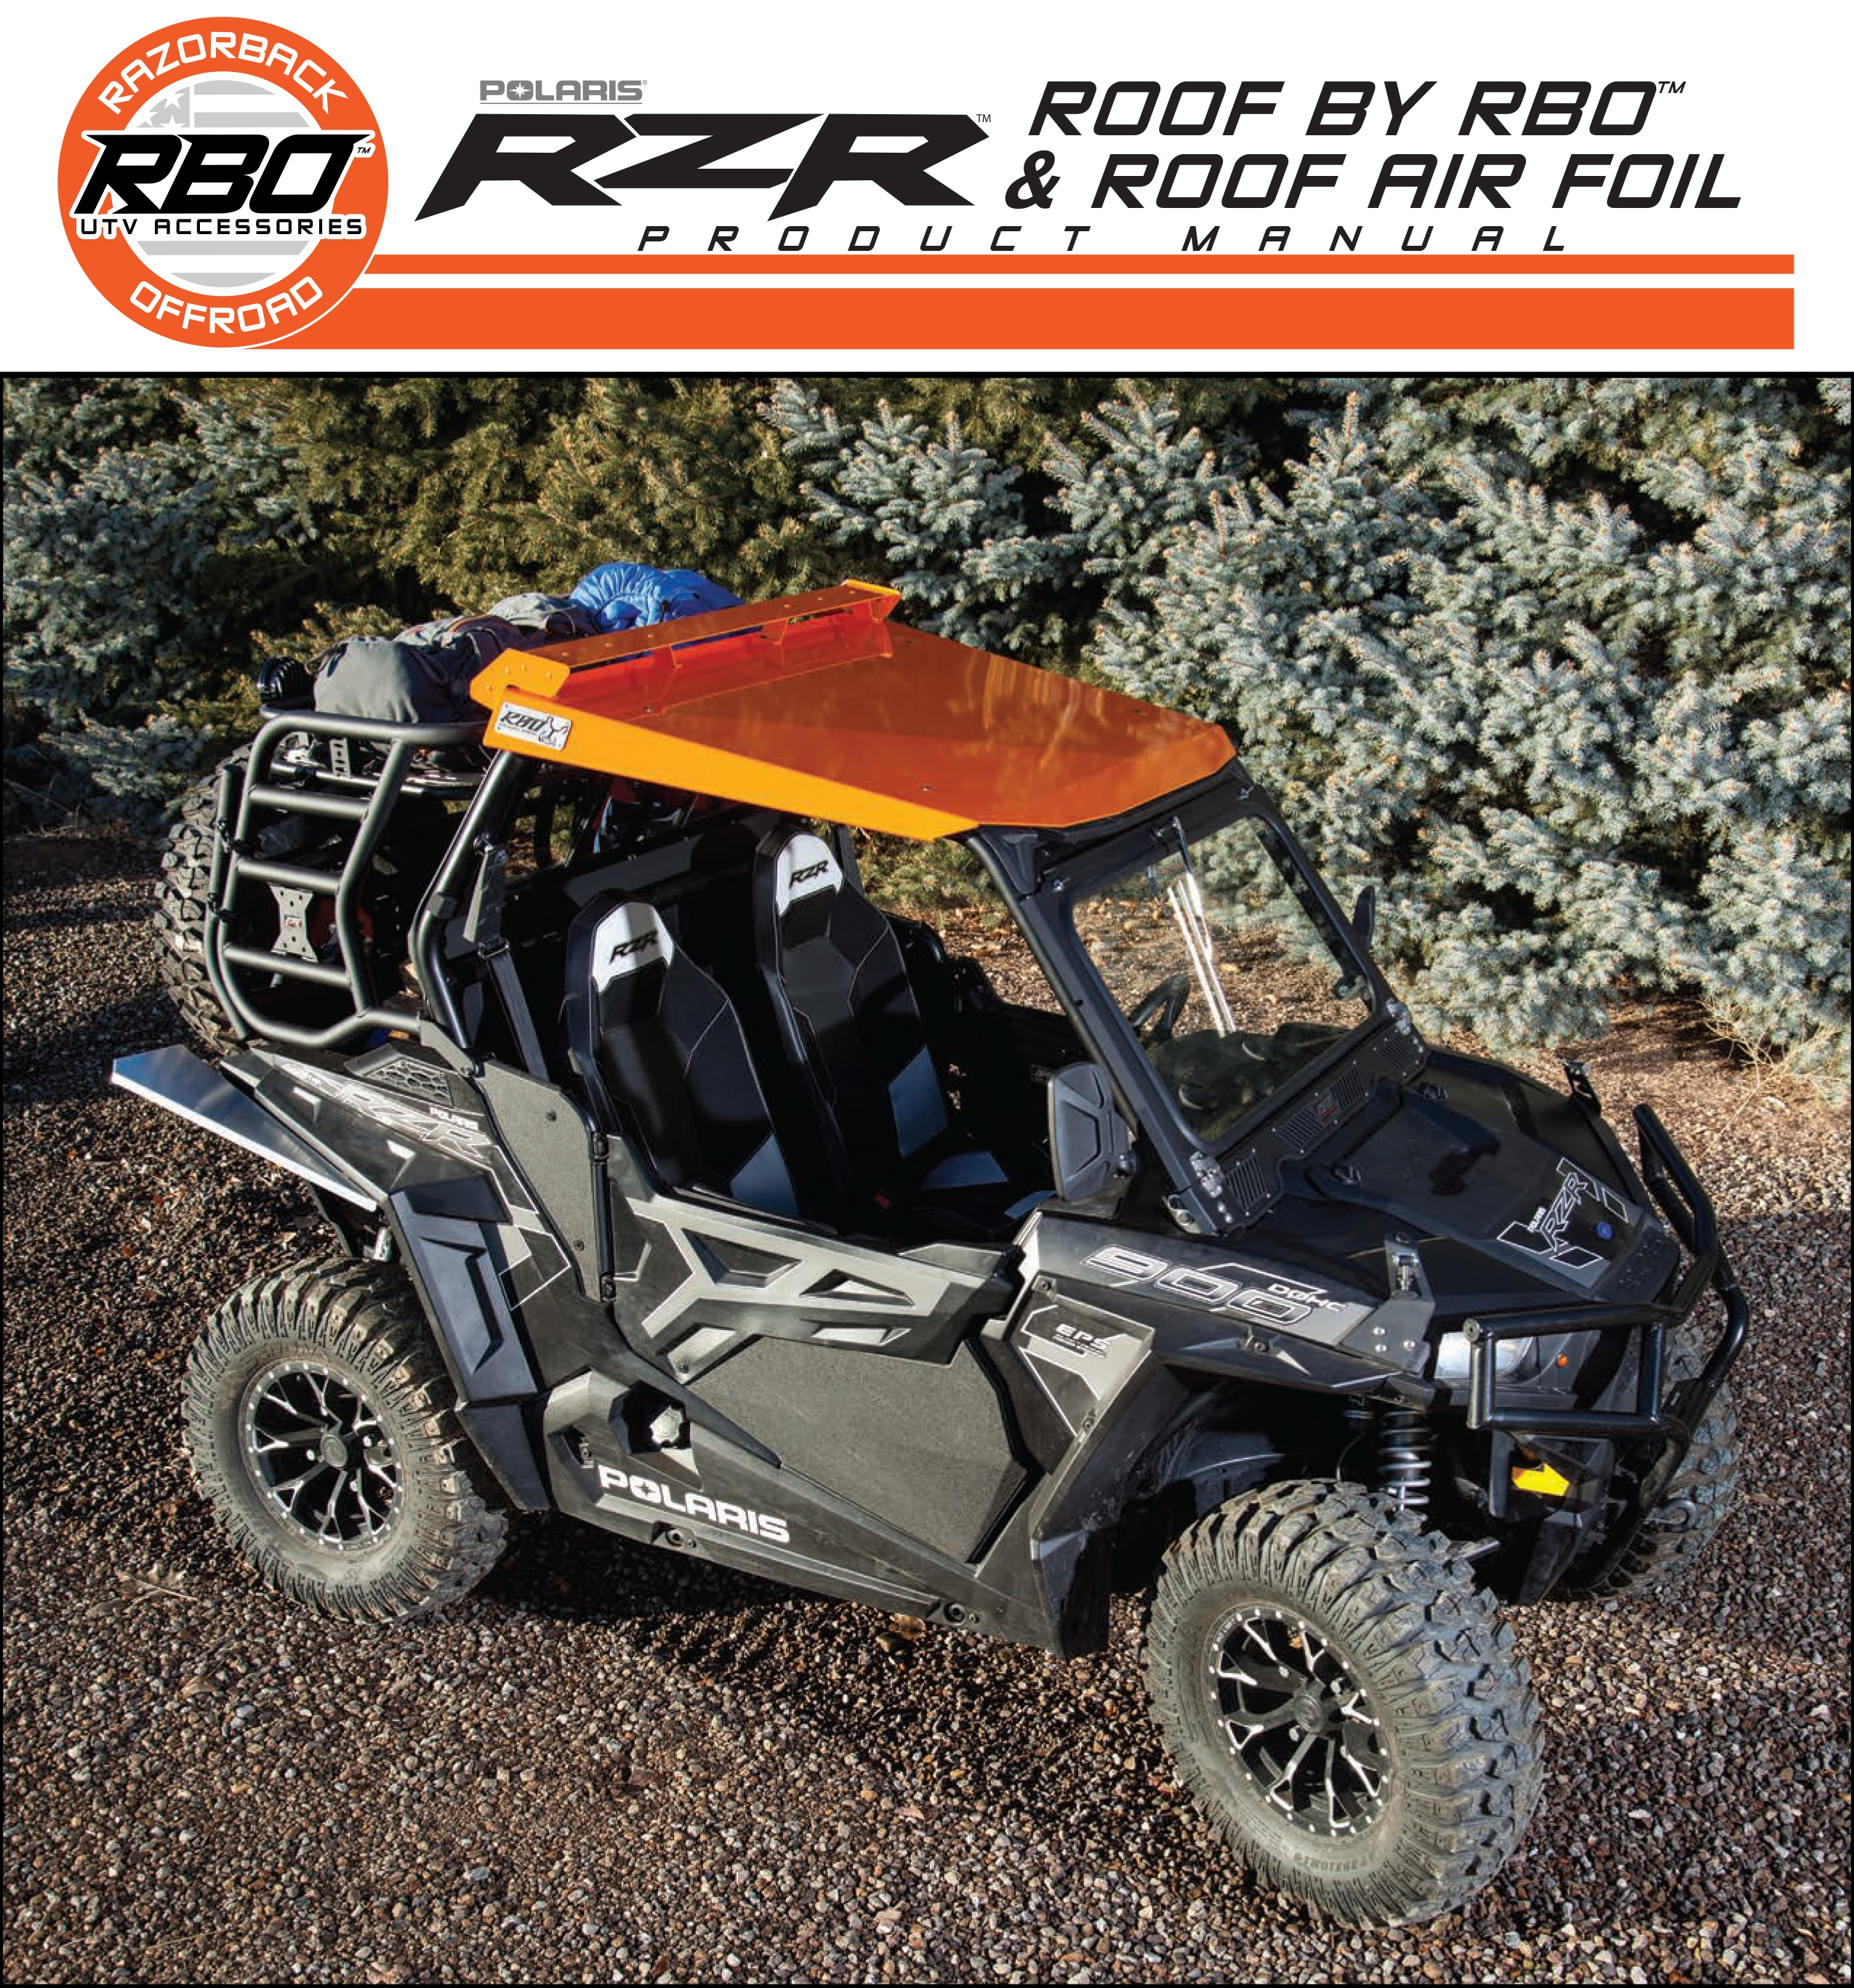 RBO Polaris RZR Roof and Air Foil Product Manual